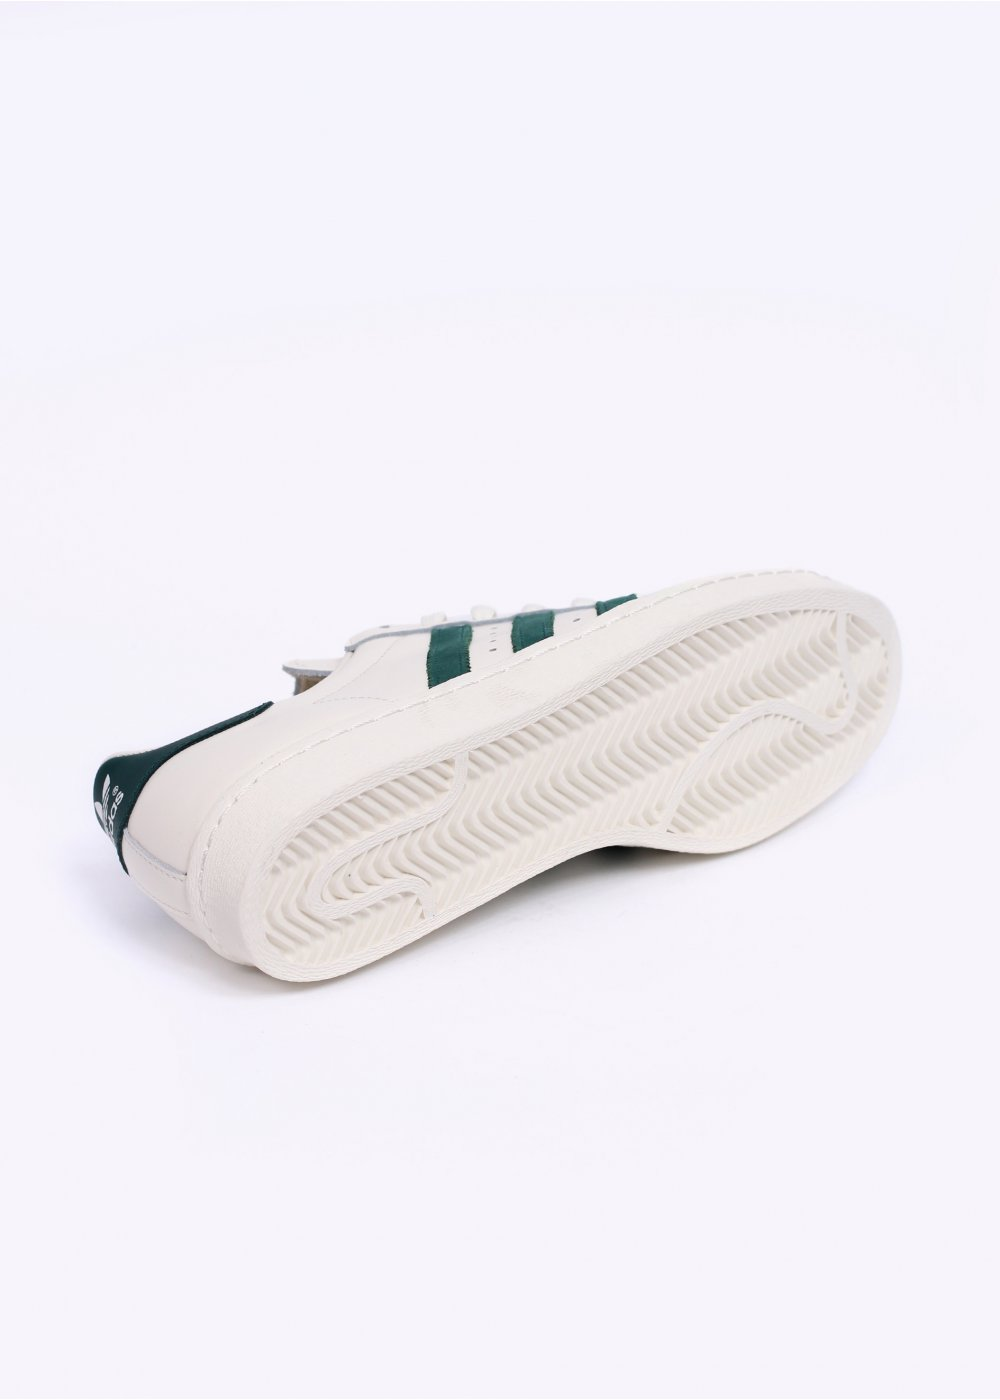 size 40 8e269 d1197 adidas Originals Footwear Superstar 80s Vintage Deluxe Trainers - Vintage  White / Collegiate Green / Off White